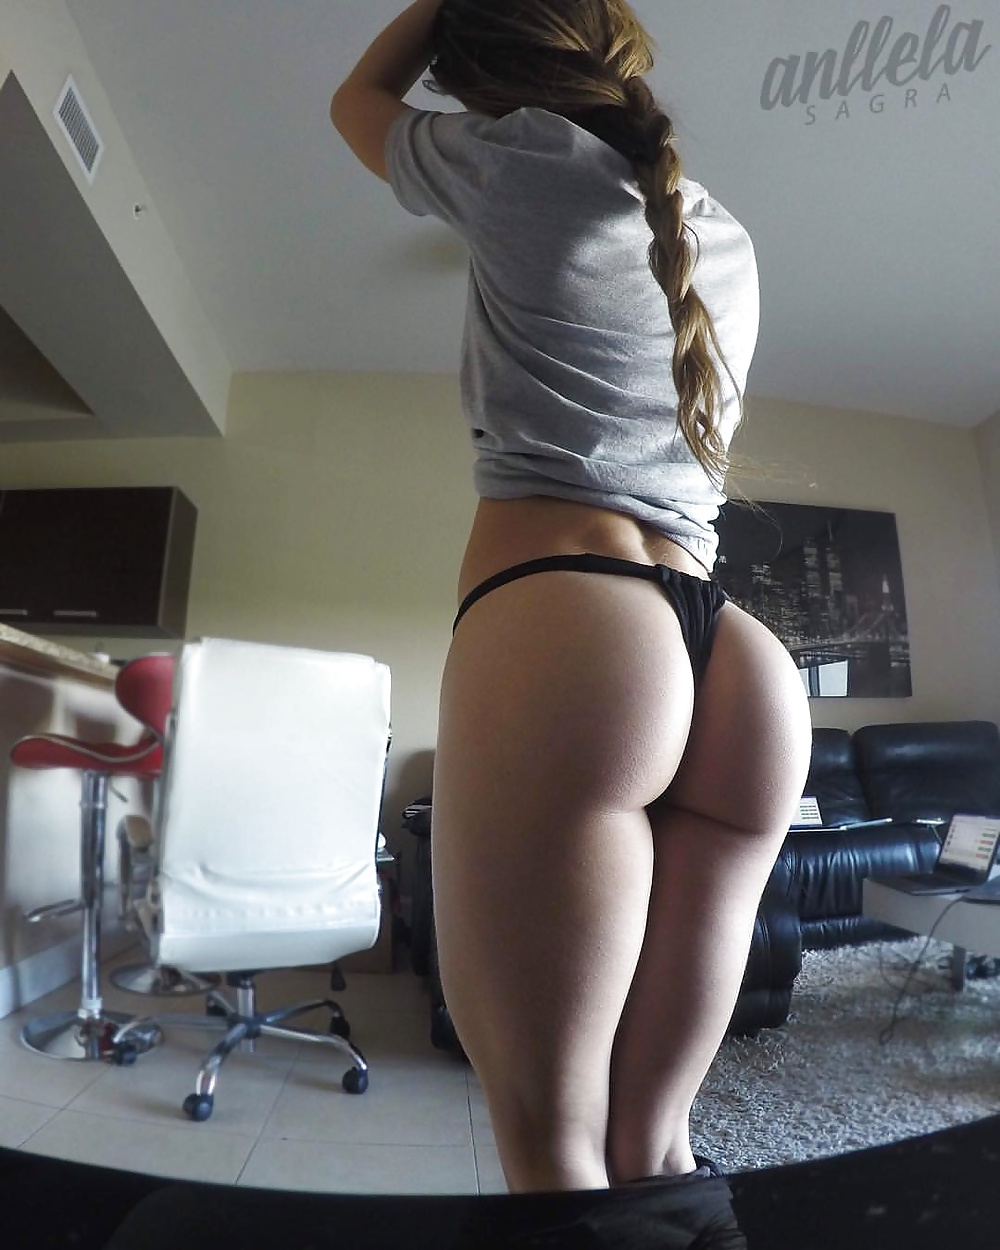 Russian bubble ass pictures girls #2